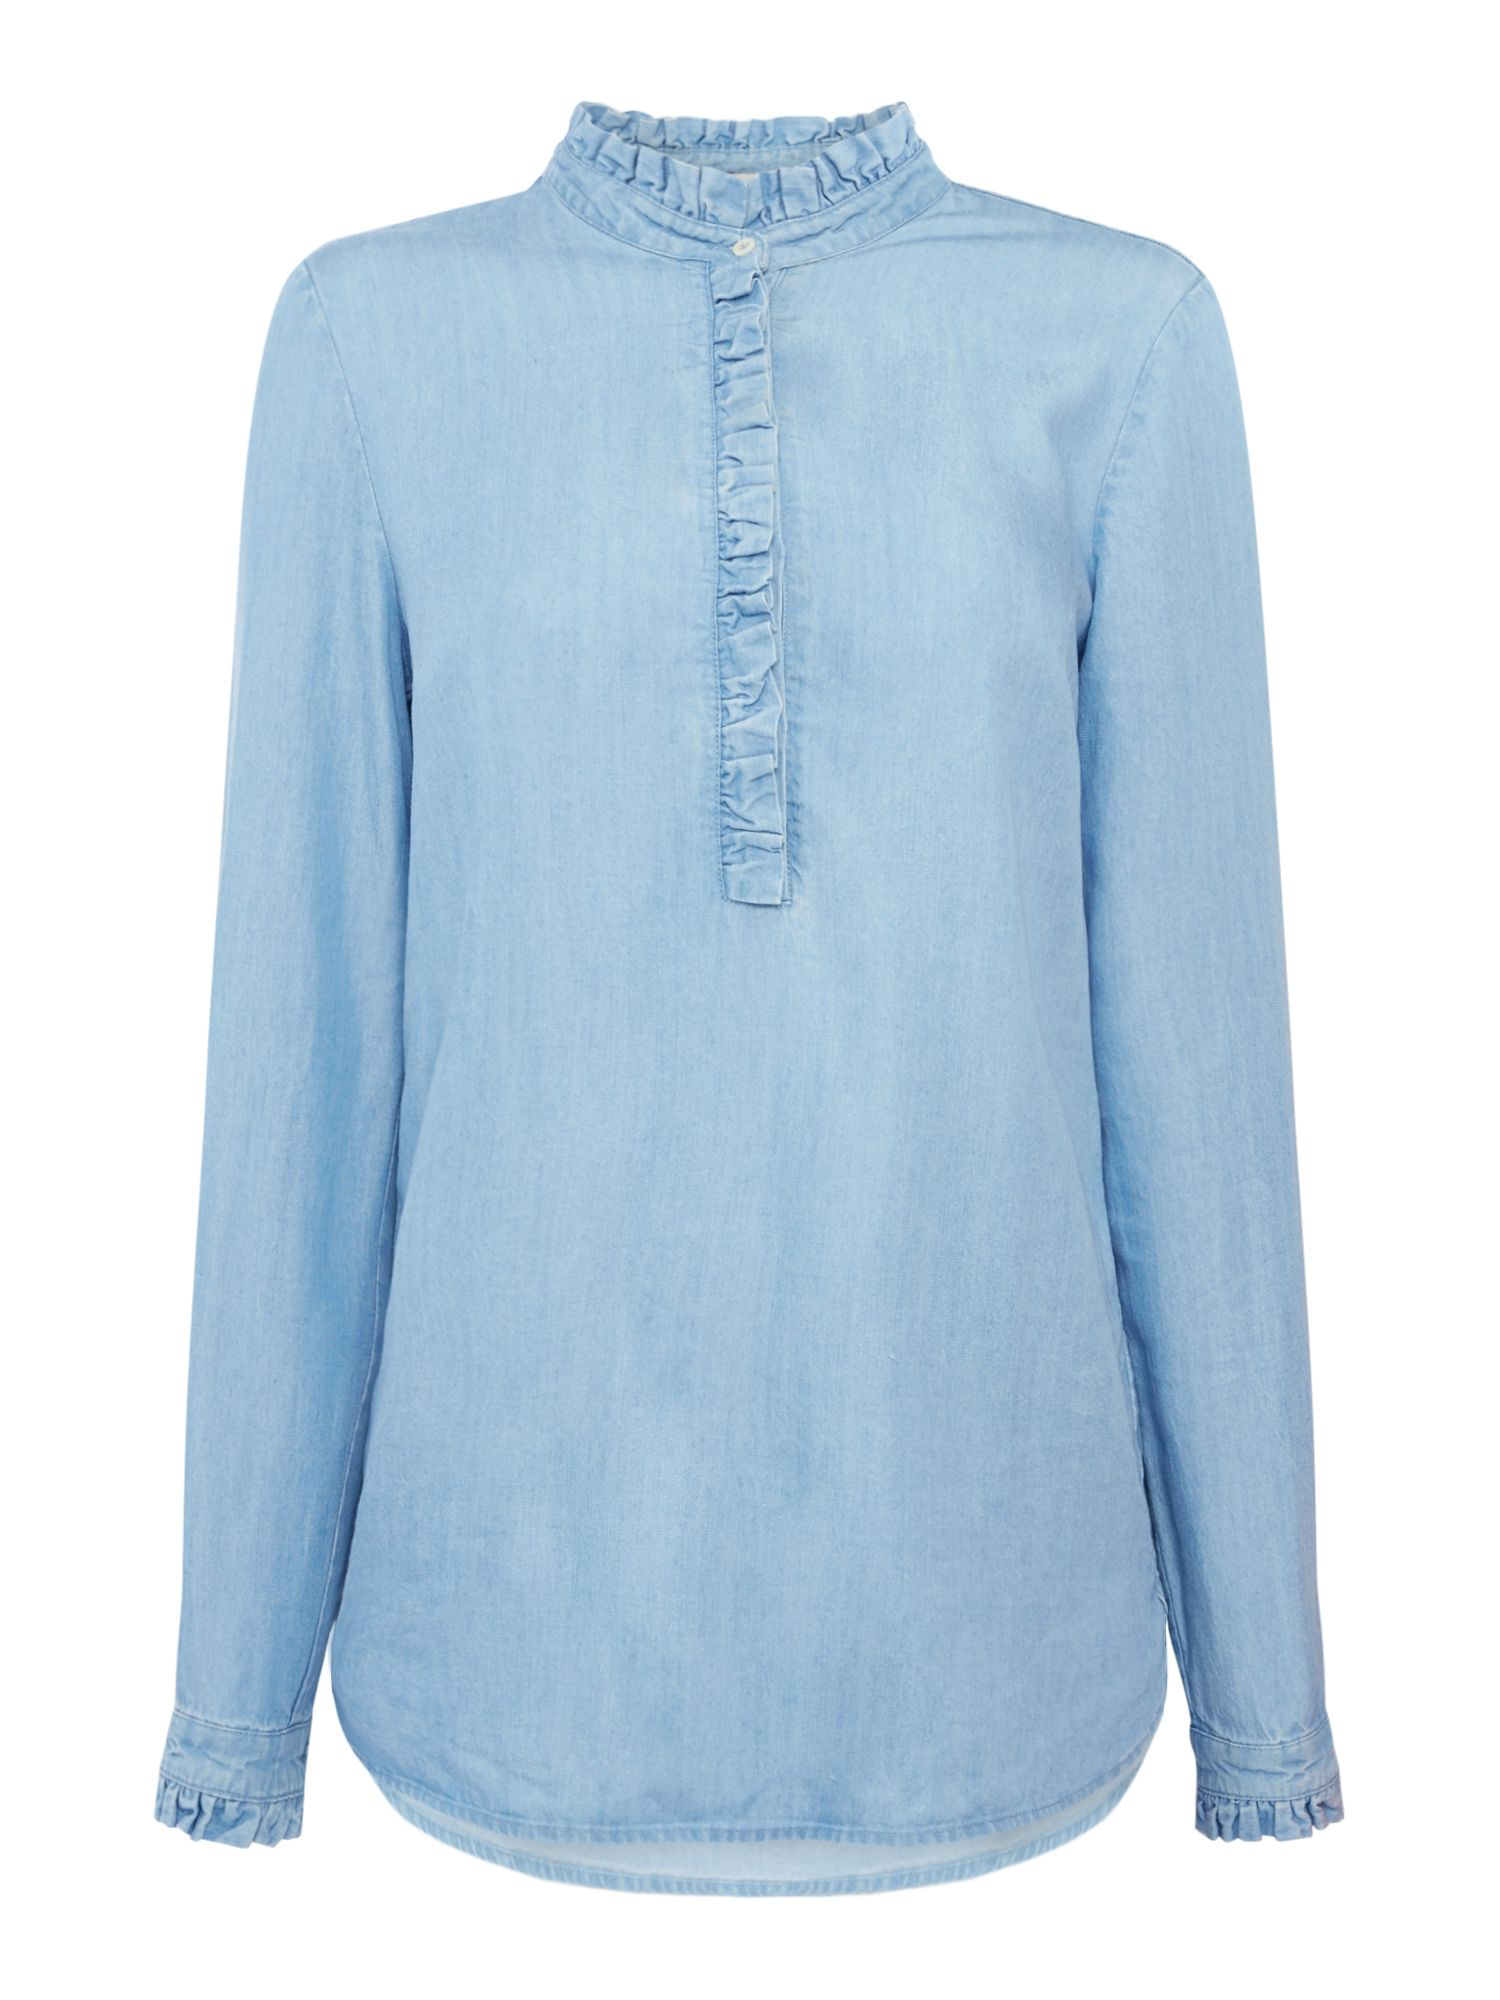 Oui Denim blouse with frill, Multi-Coloured